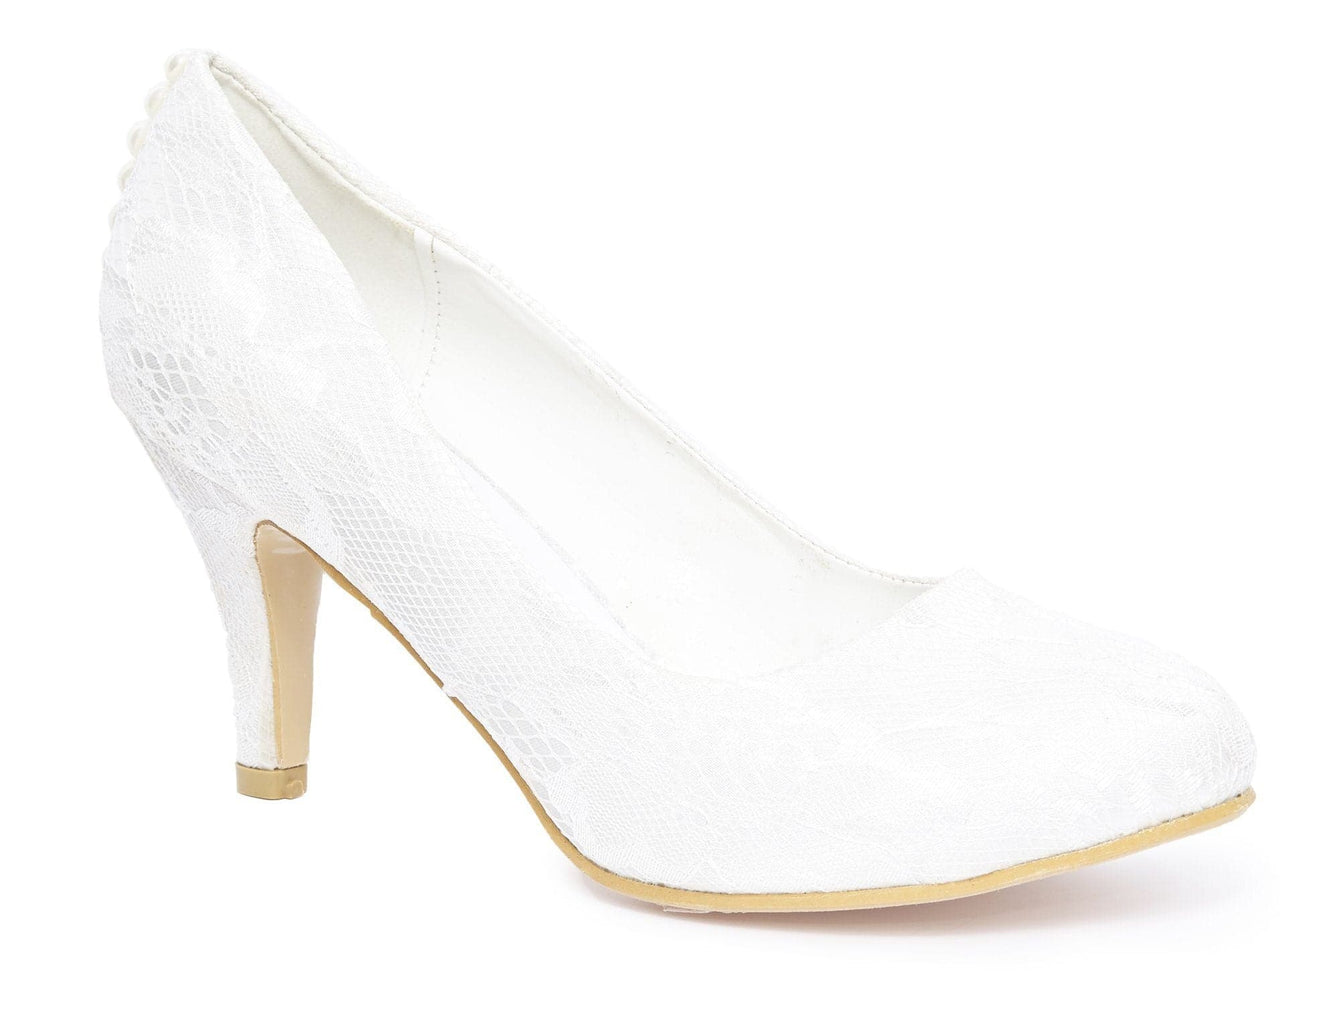 Ballgown Pearl Lace Court Shoe in Ivory